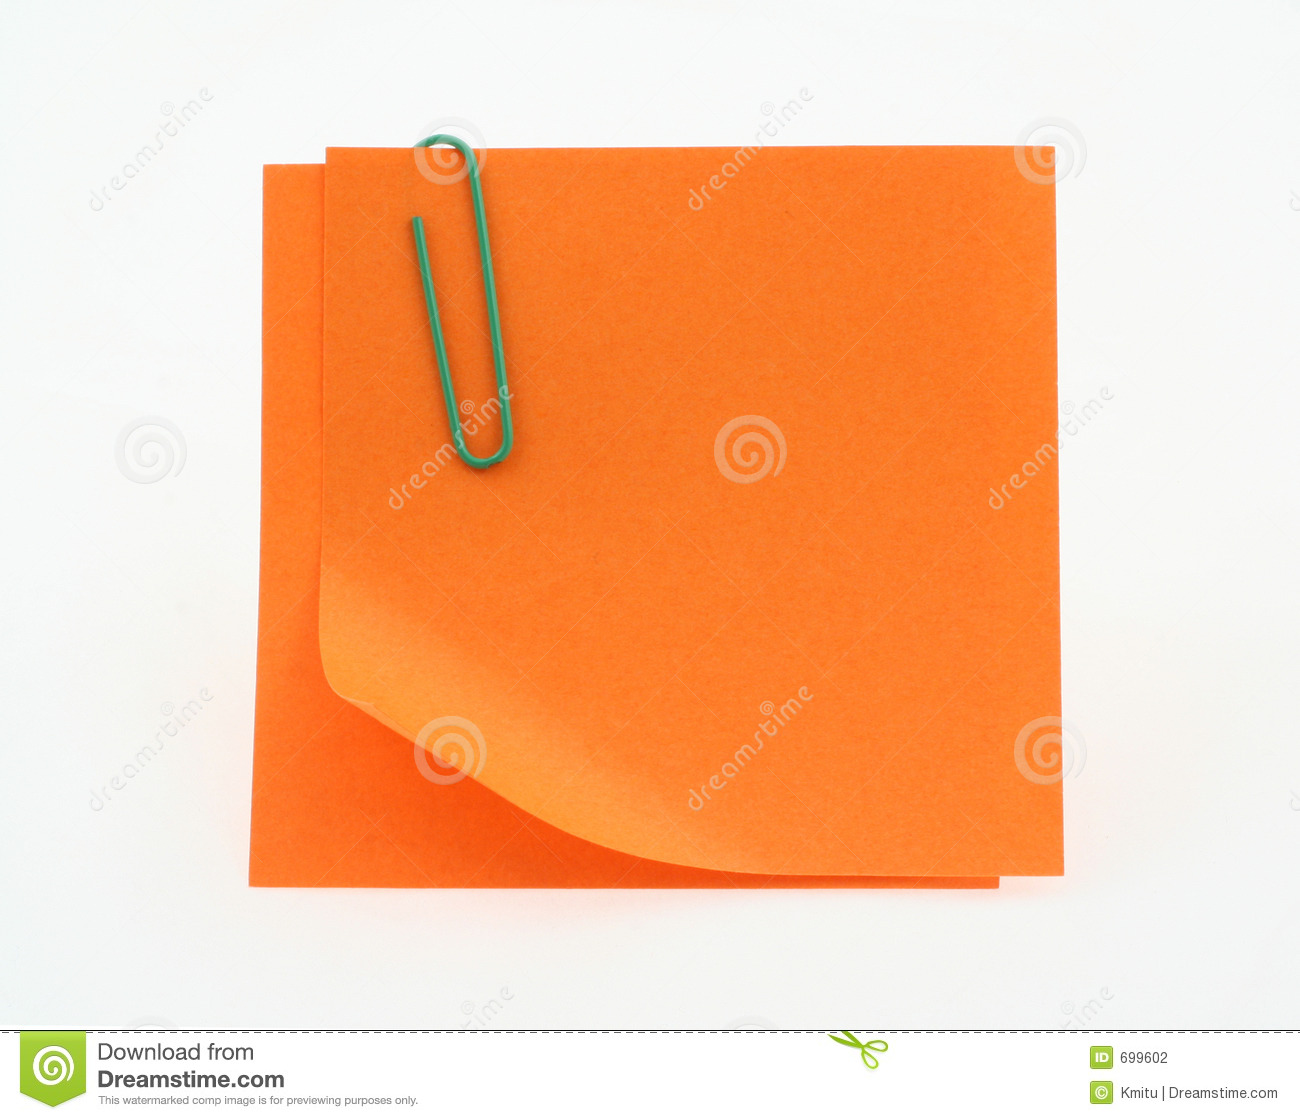 Wilsonville (OR) United States  city photos : Orange Post it Notes With A Bent Corner On White Stock Photography ...